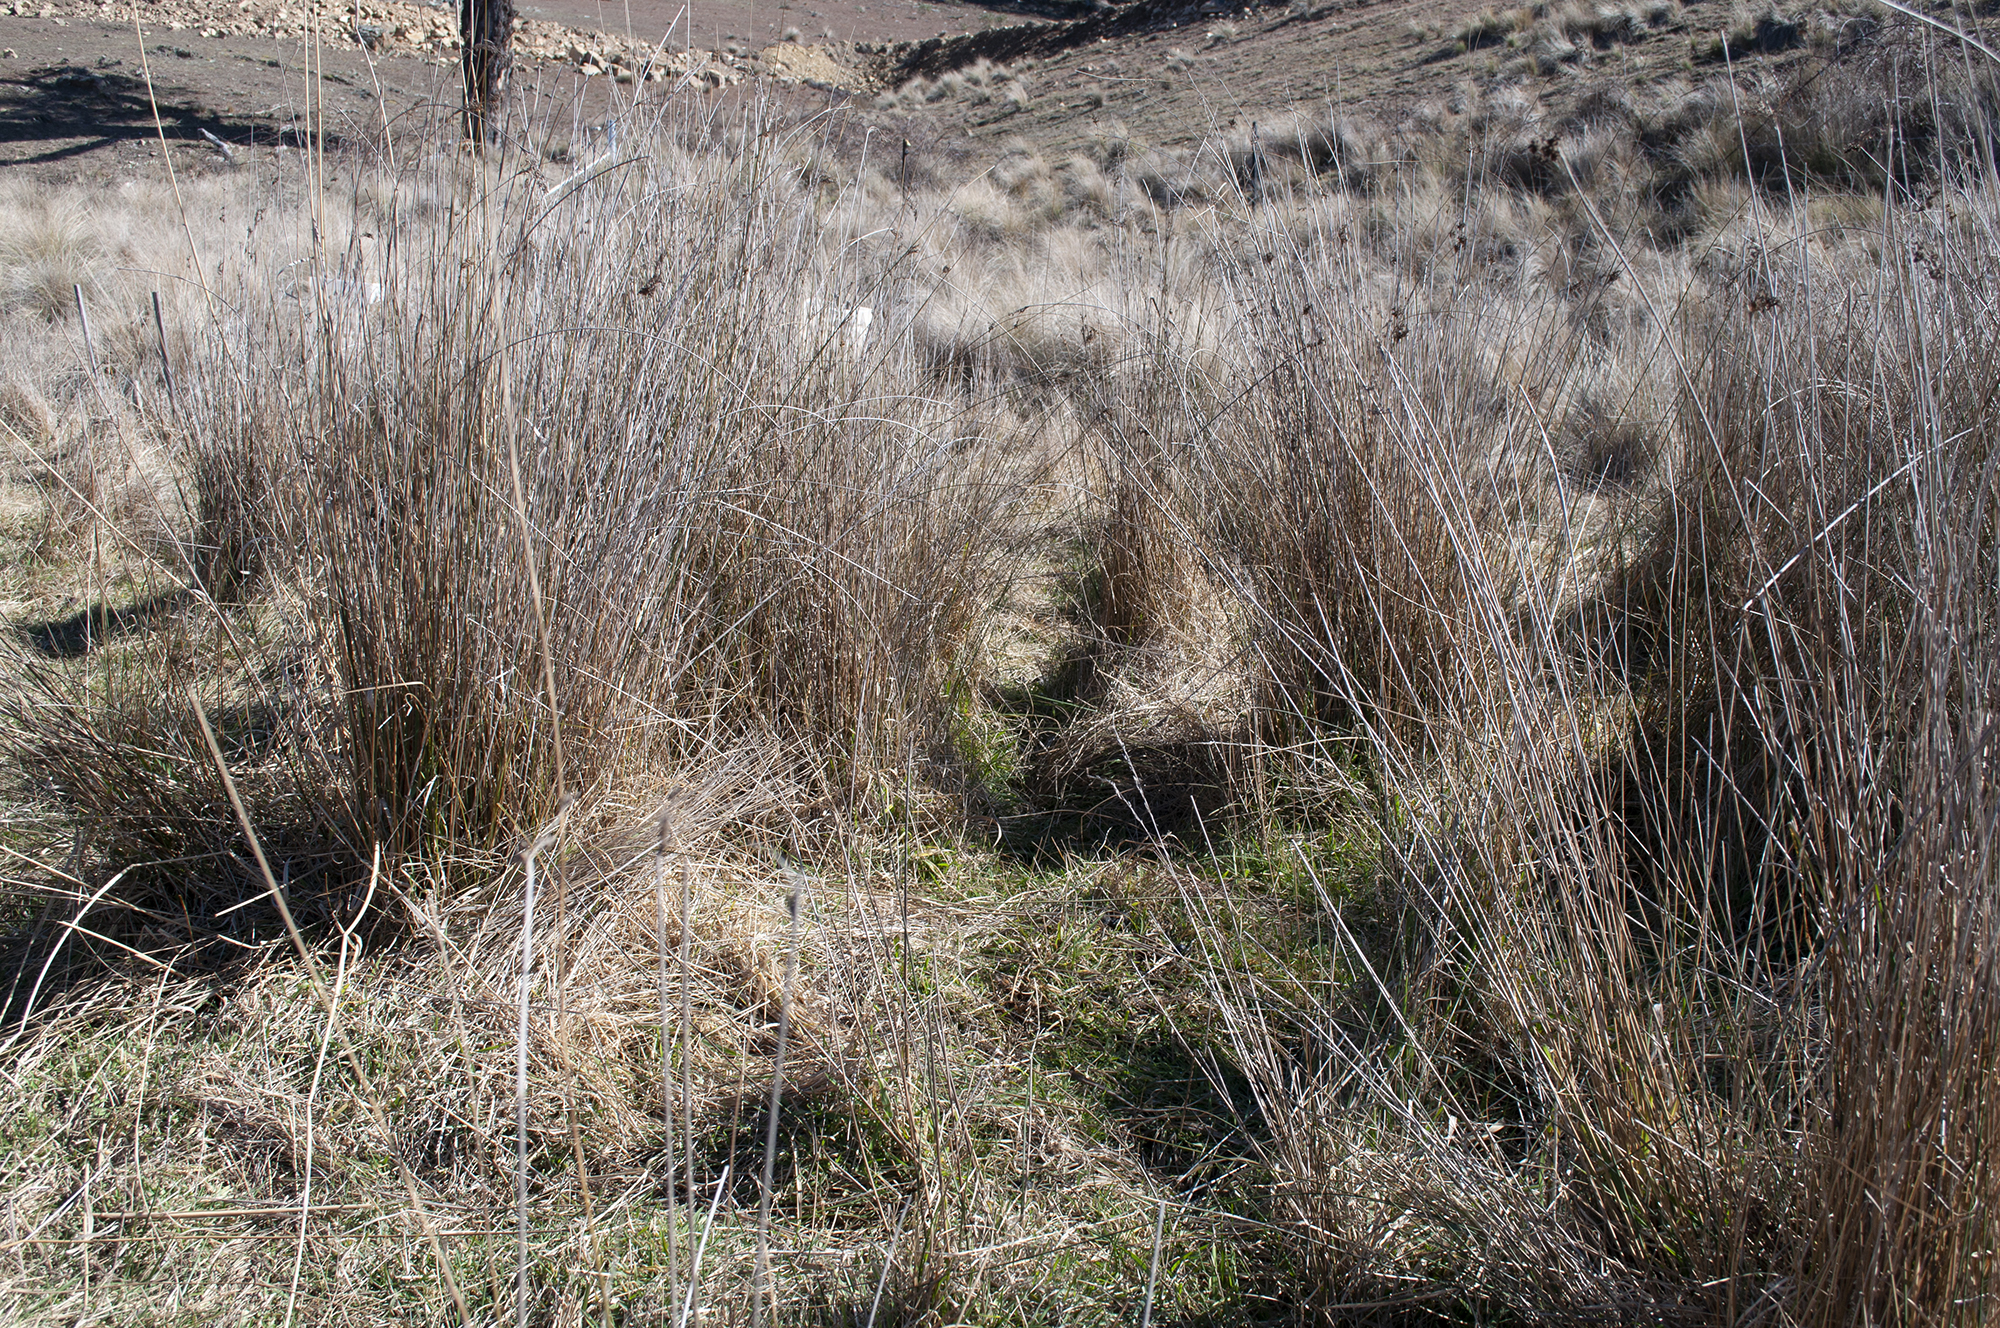 Summer grass species surviving winter thanks to localised micro-climate conditions and water retention in the landscape.